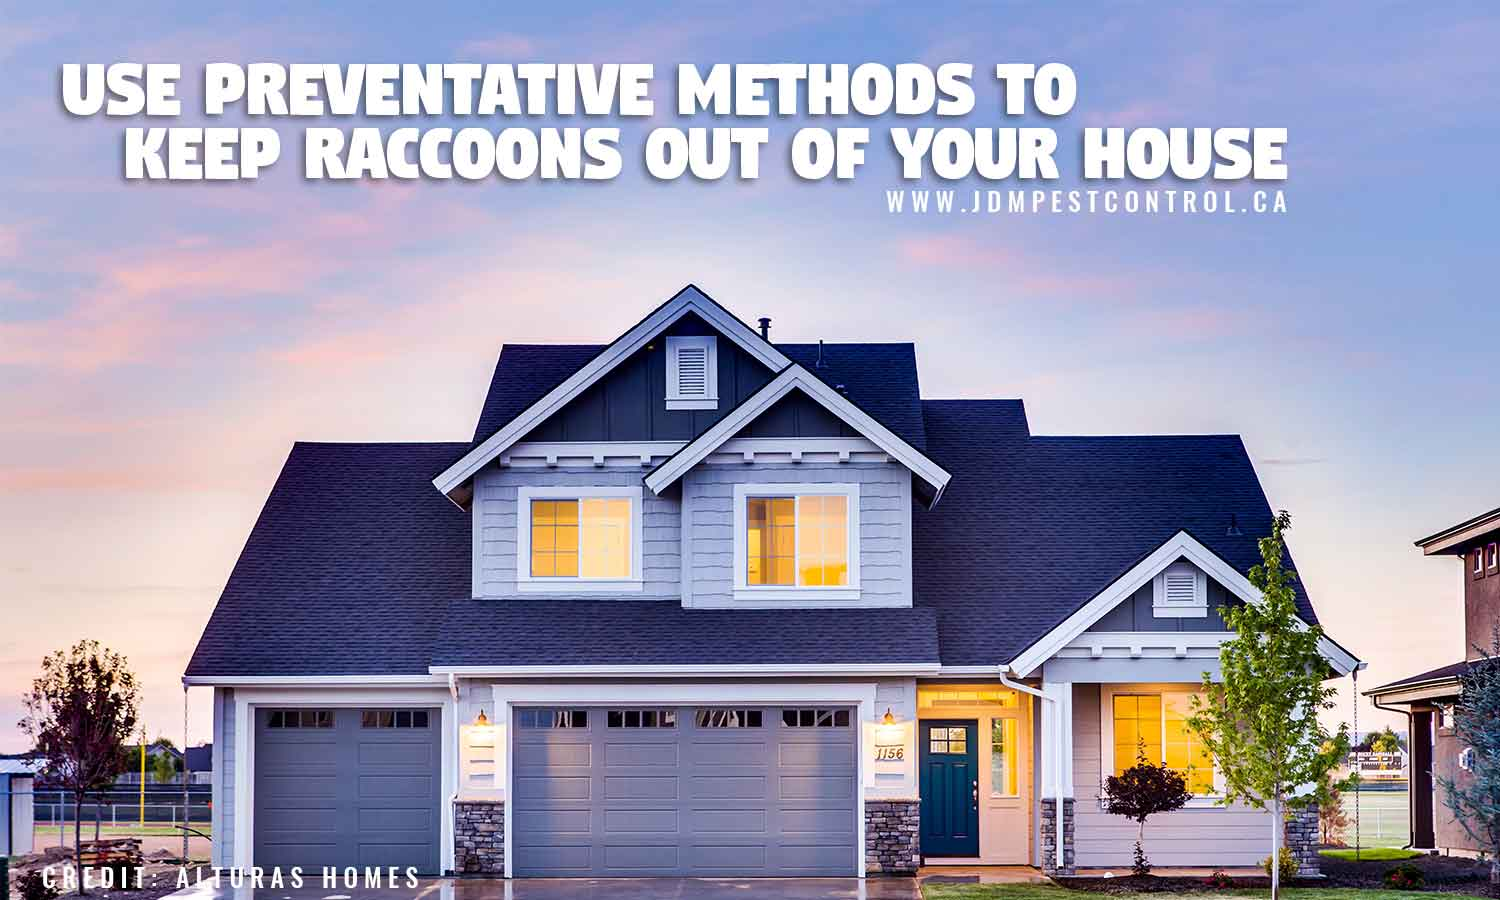 Use preventative methods to keep raccoons out of your house